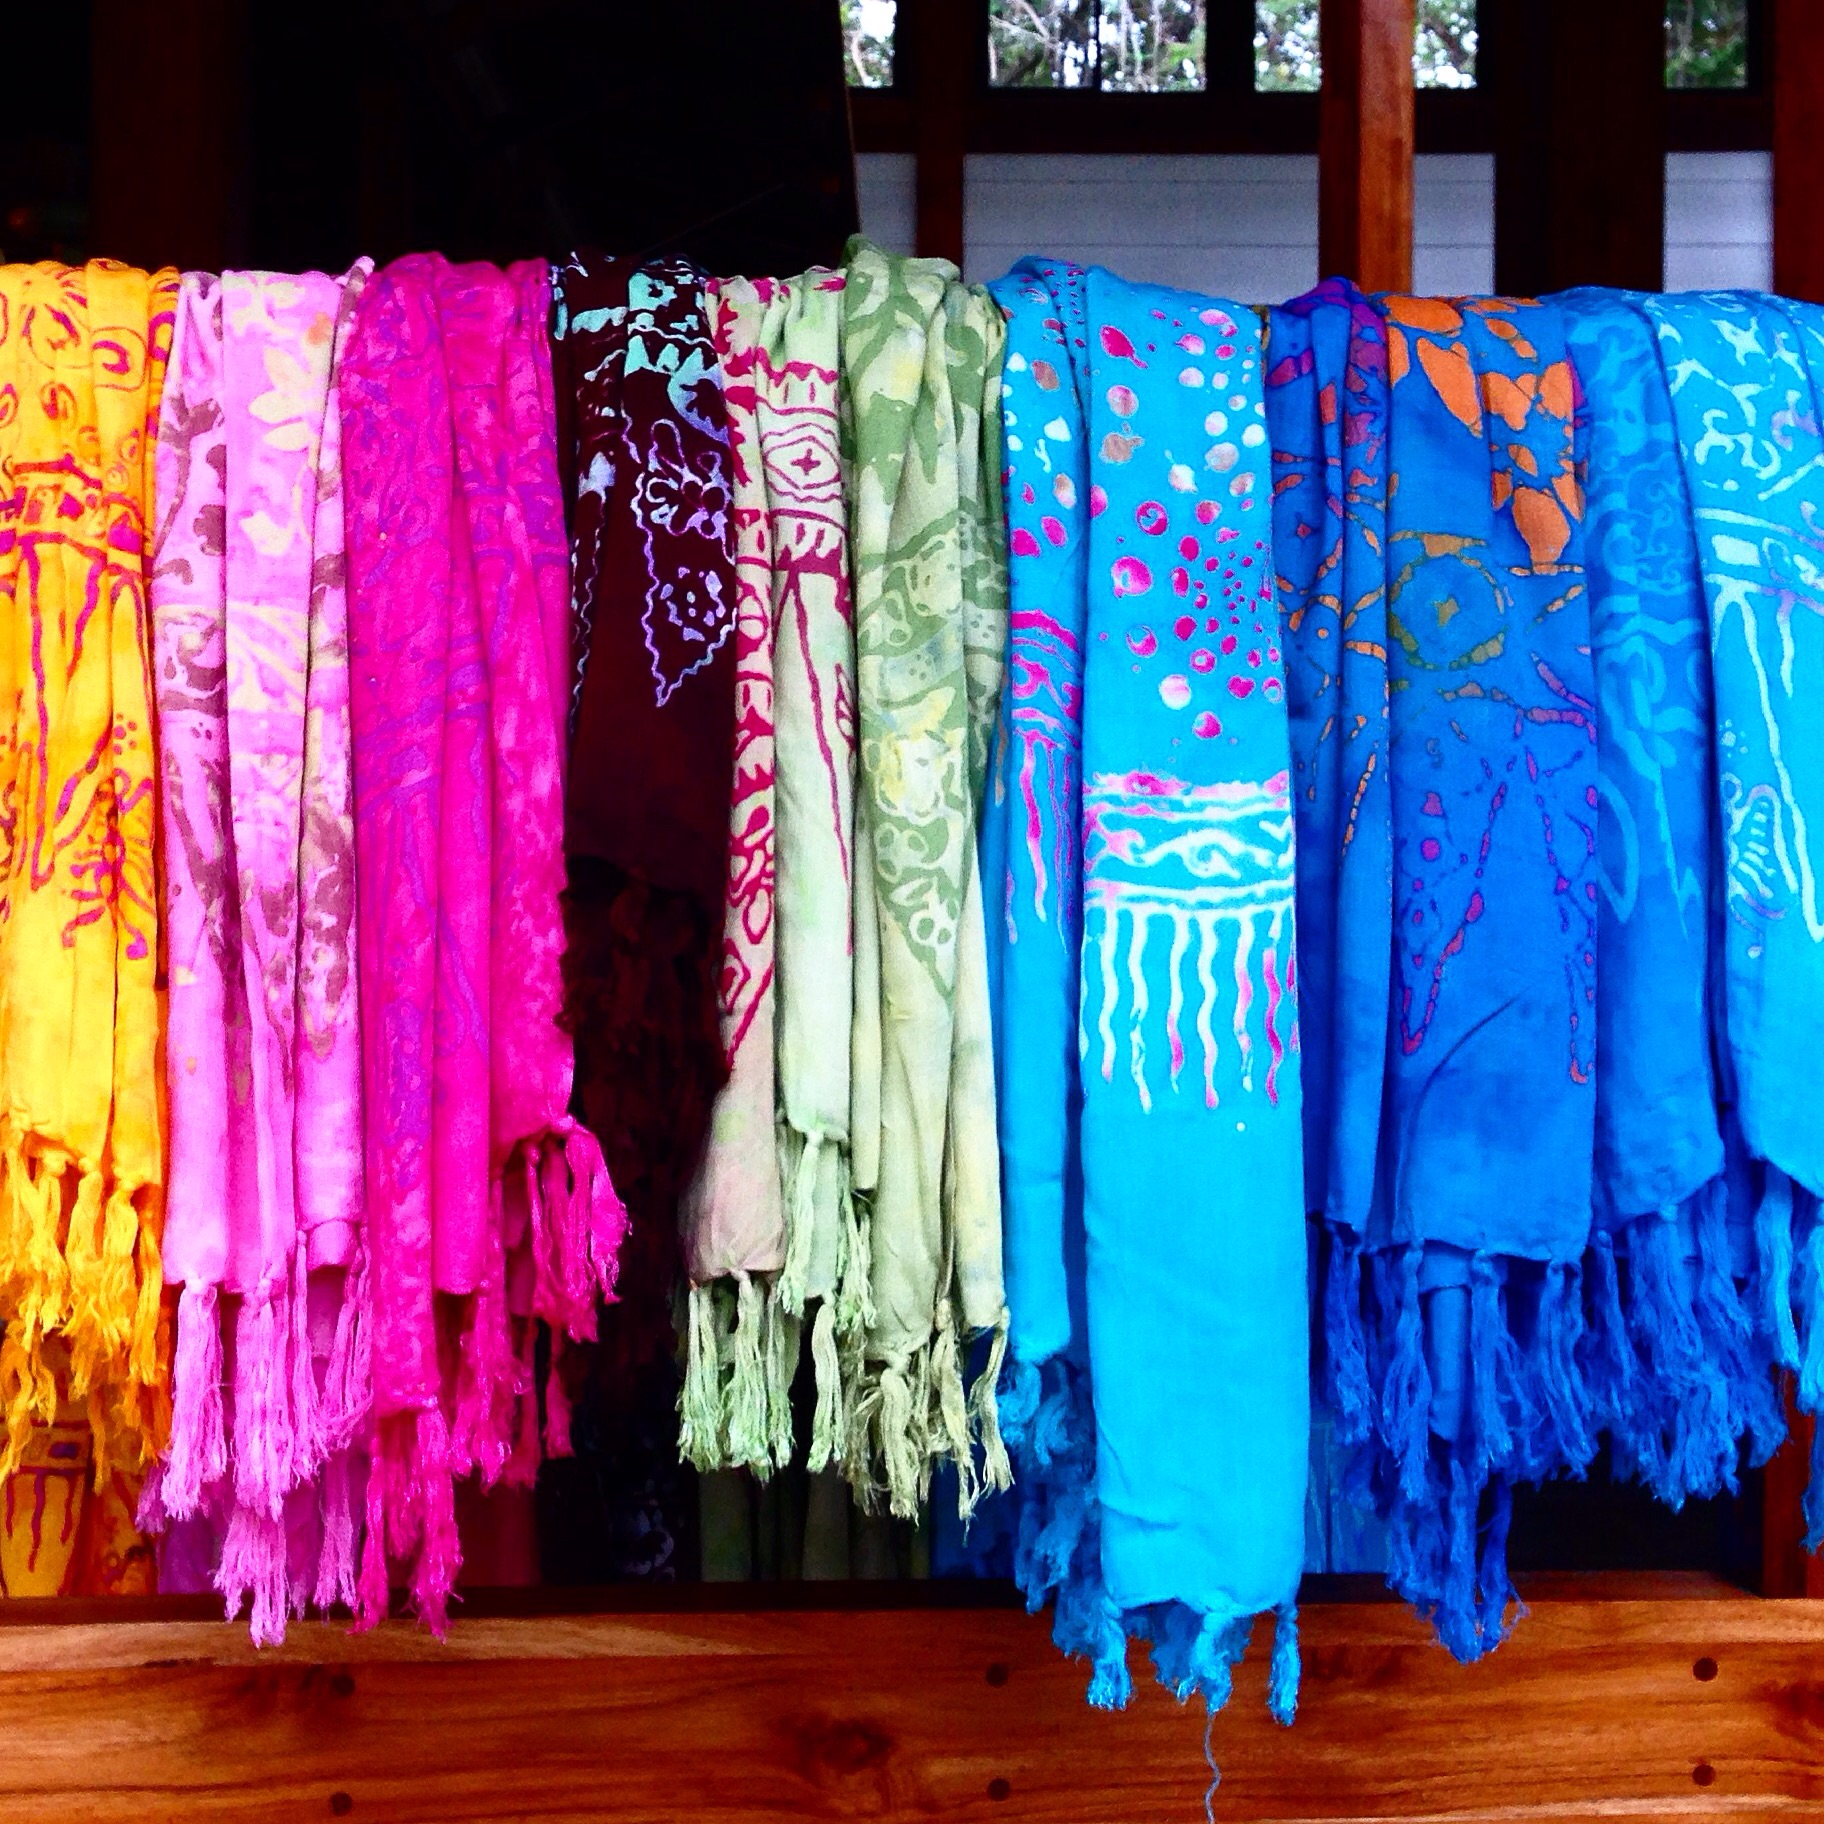 At lunch, we also sell snacks and sarongs - which are now housed in our new onsite shop. The vibrant colors match the level of joy at the Osa.